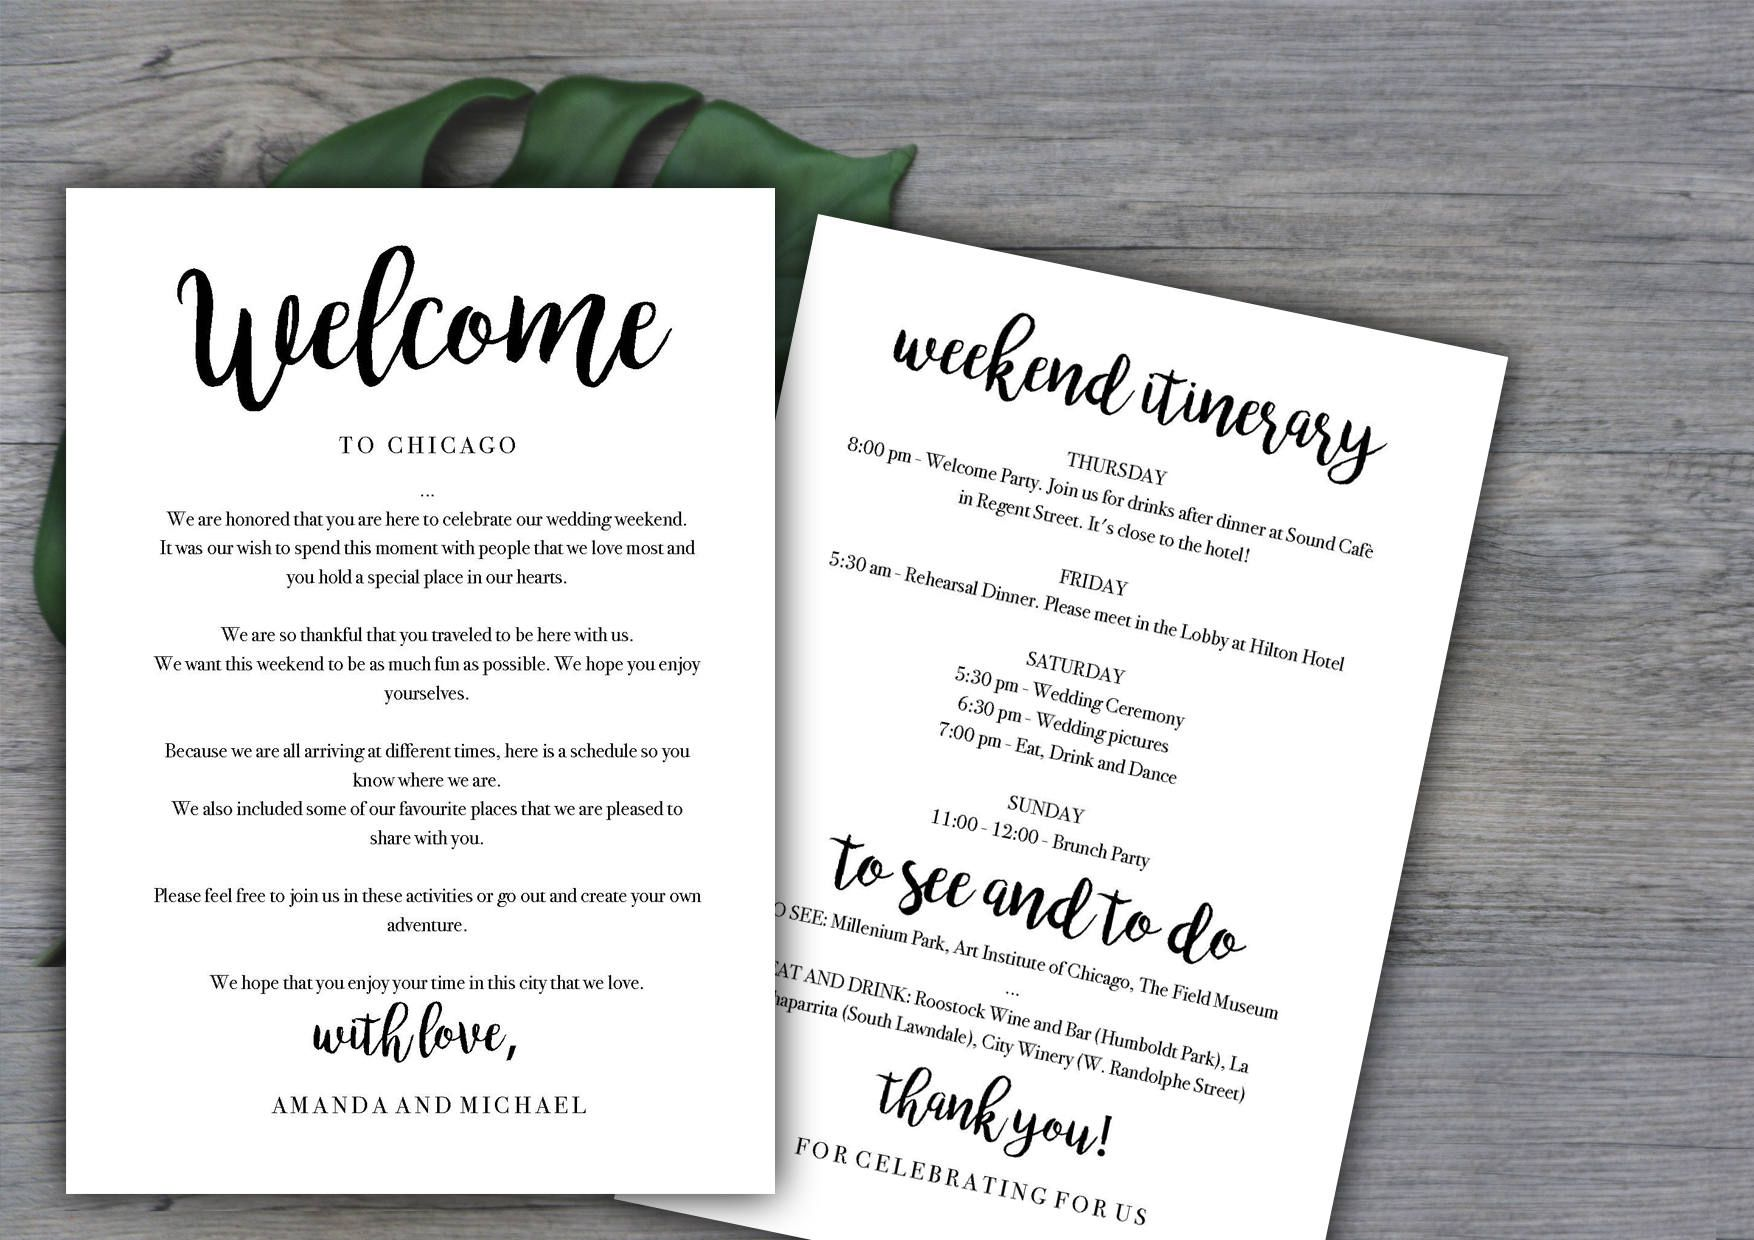 005 Dreaded Free Destination Wedding Welcome Letter Template Highest Clarity Full